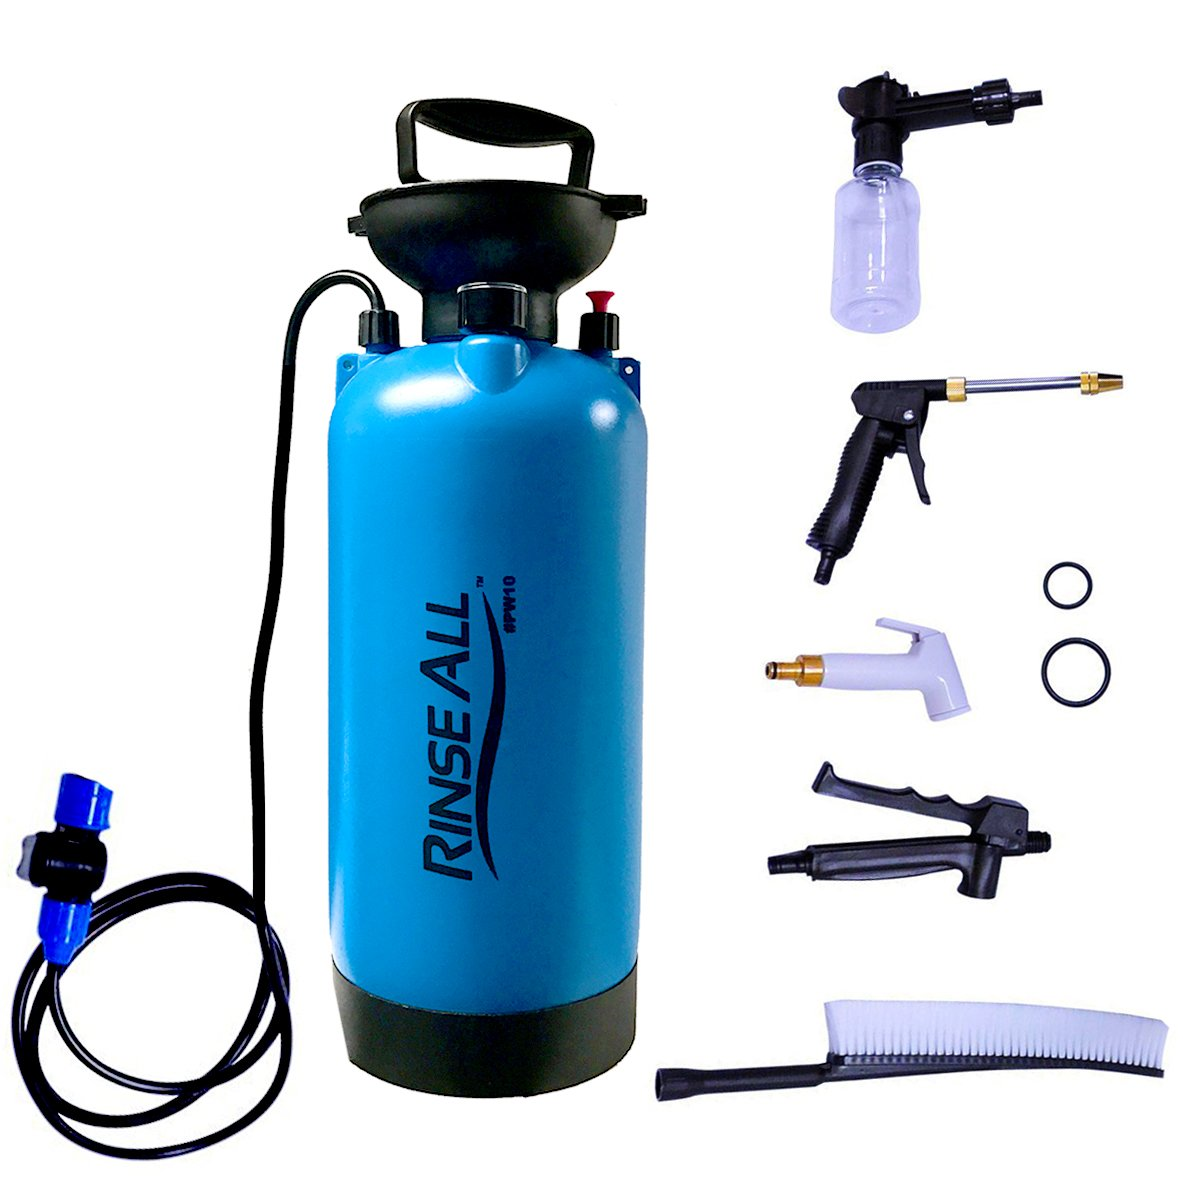 amazoncom rinse all pw10 21 gallon u2013 car washer kit camp shower portable shower with heavy duty shower pump handle flexible hose and pressure gauge